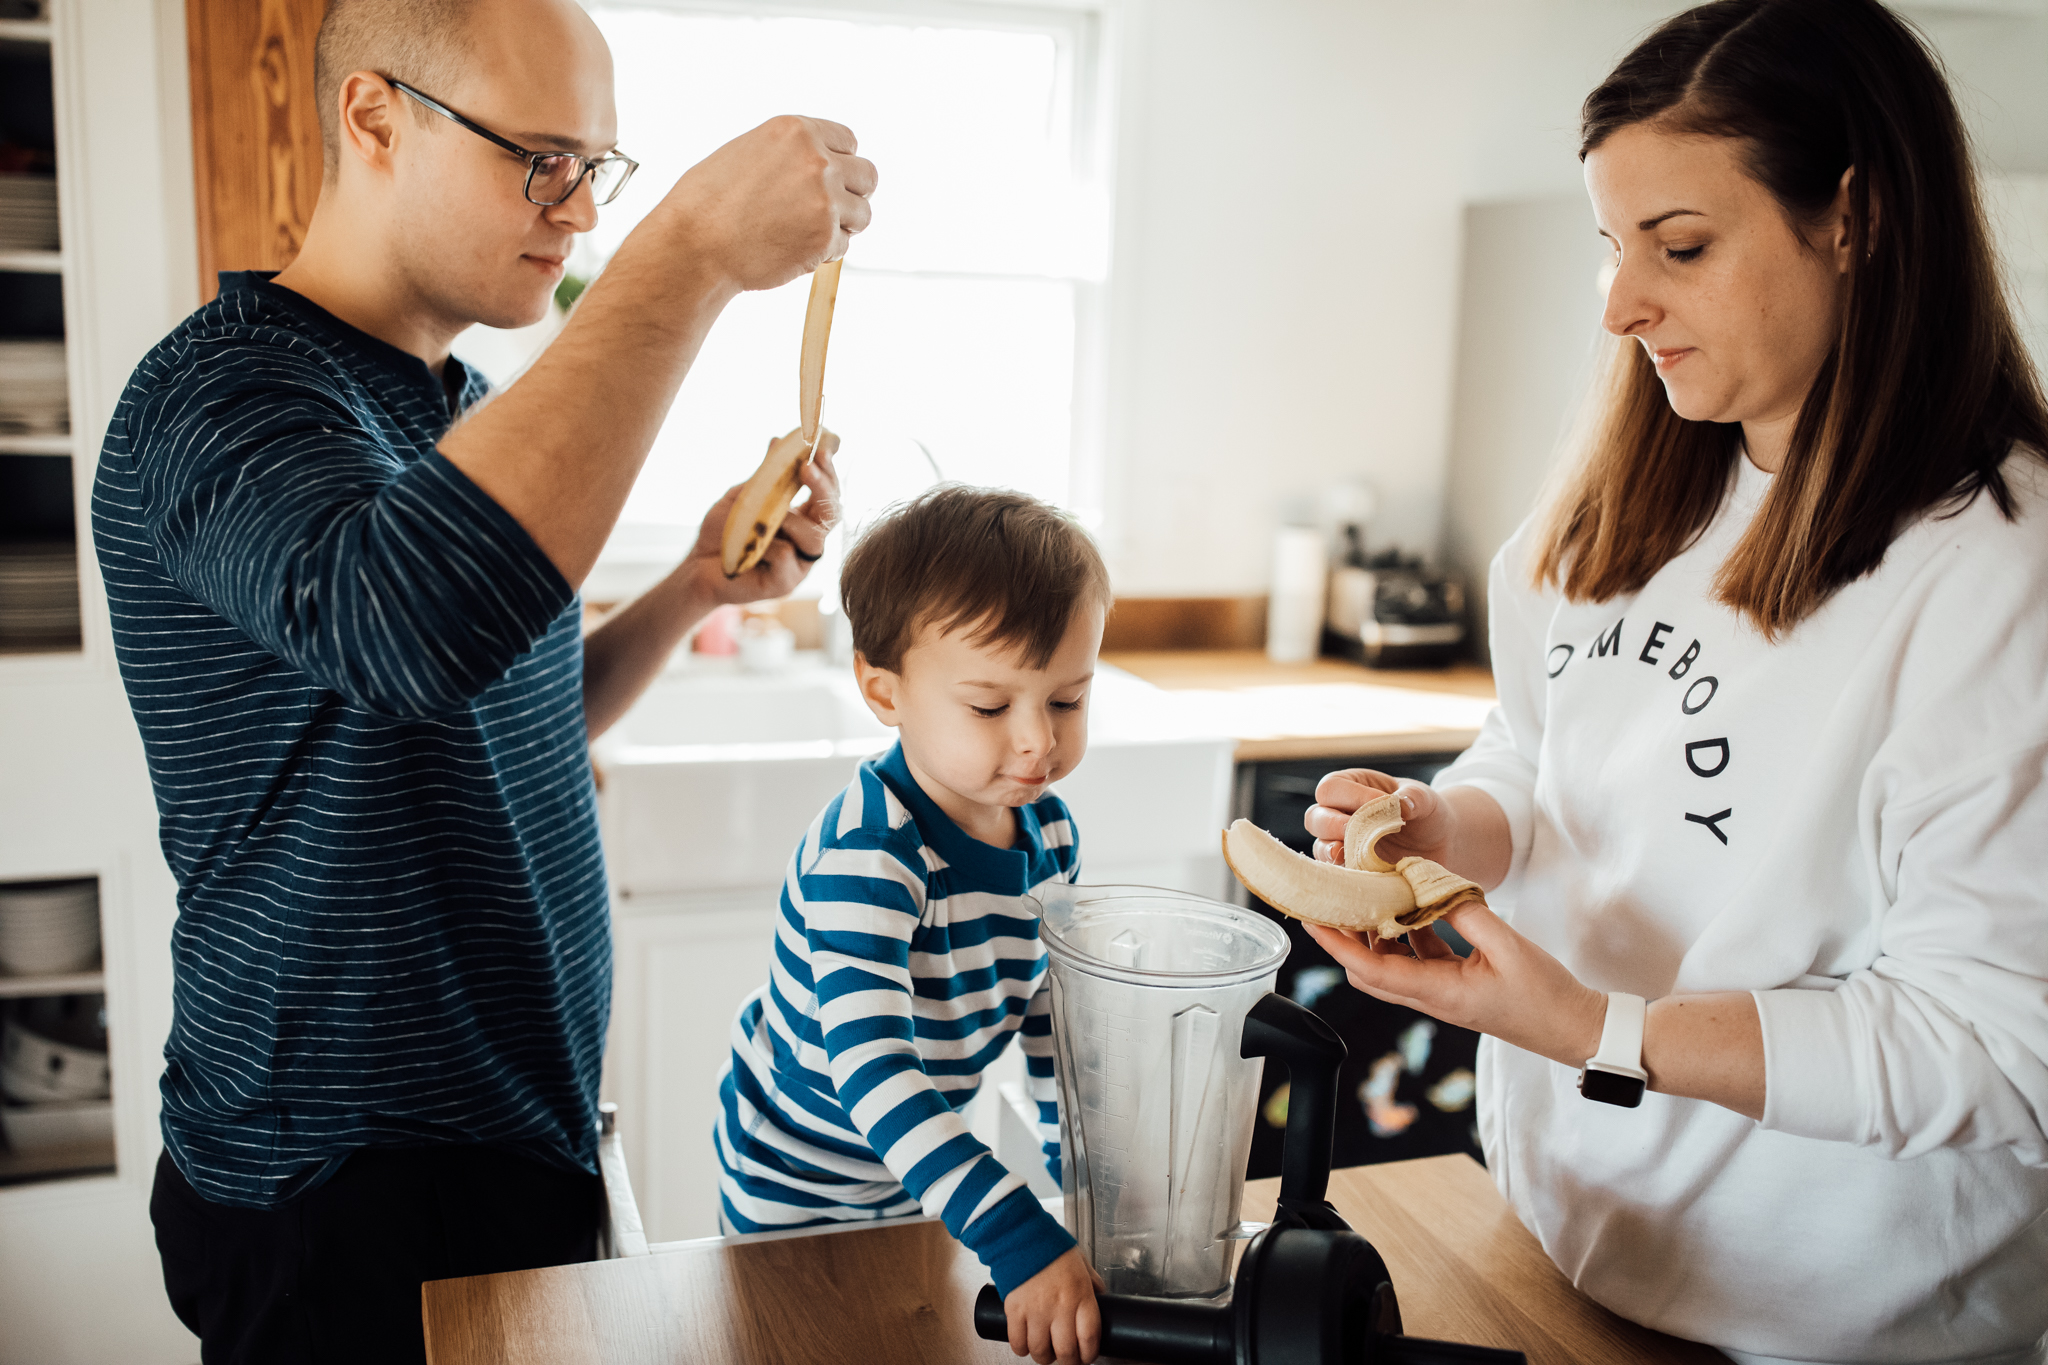 memphis-family-photographer-in-home-thewarmtharoundyou (84 of 140).jpg